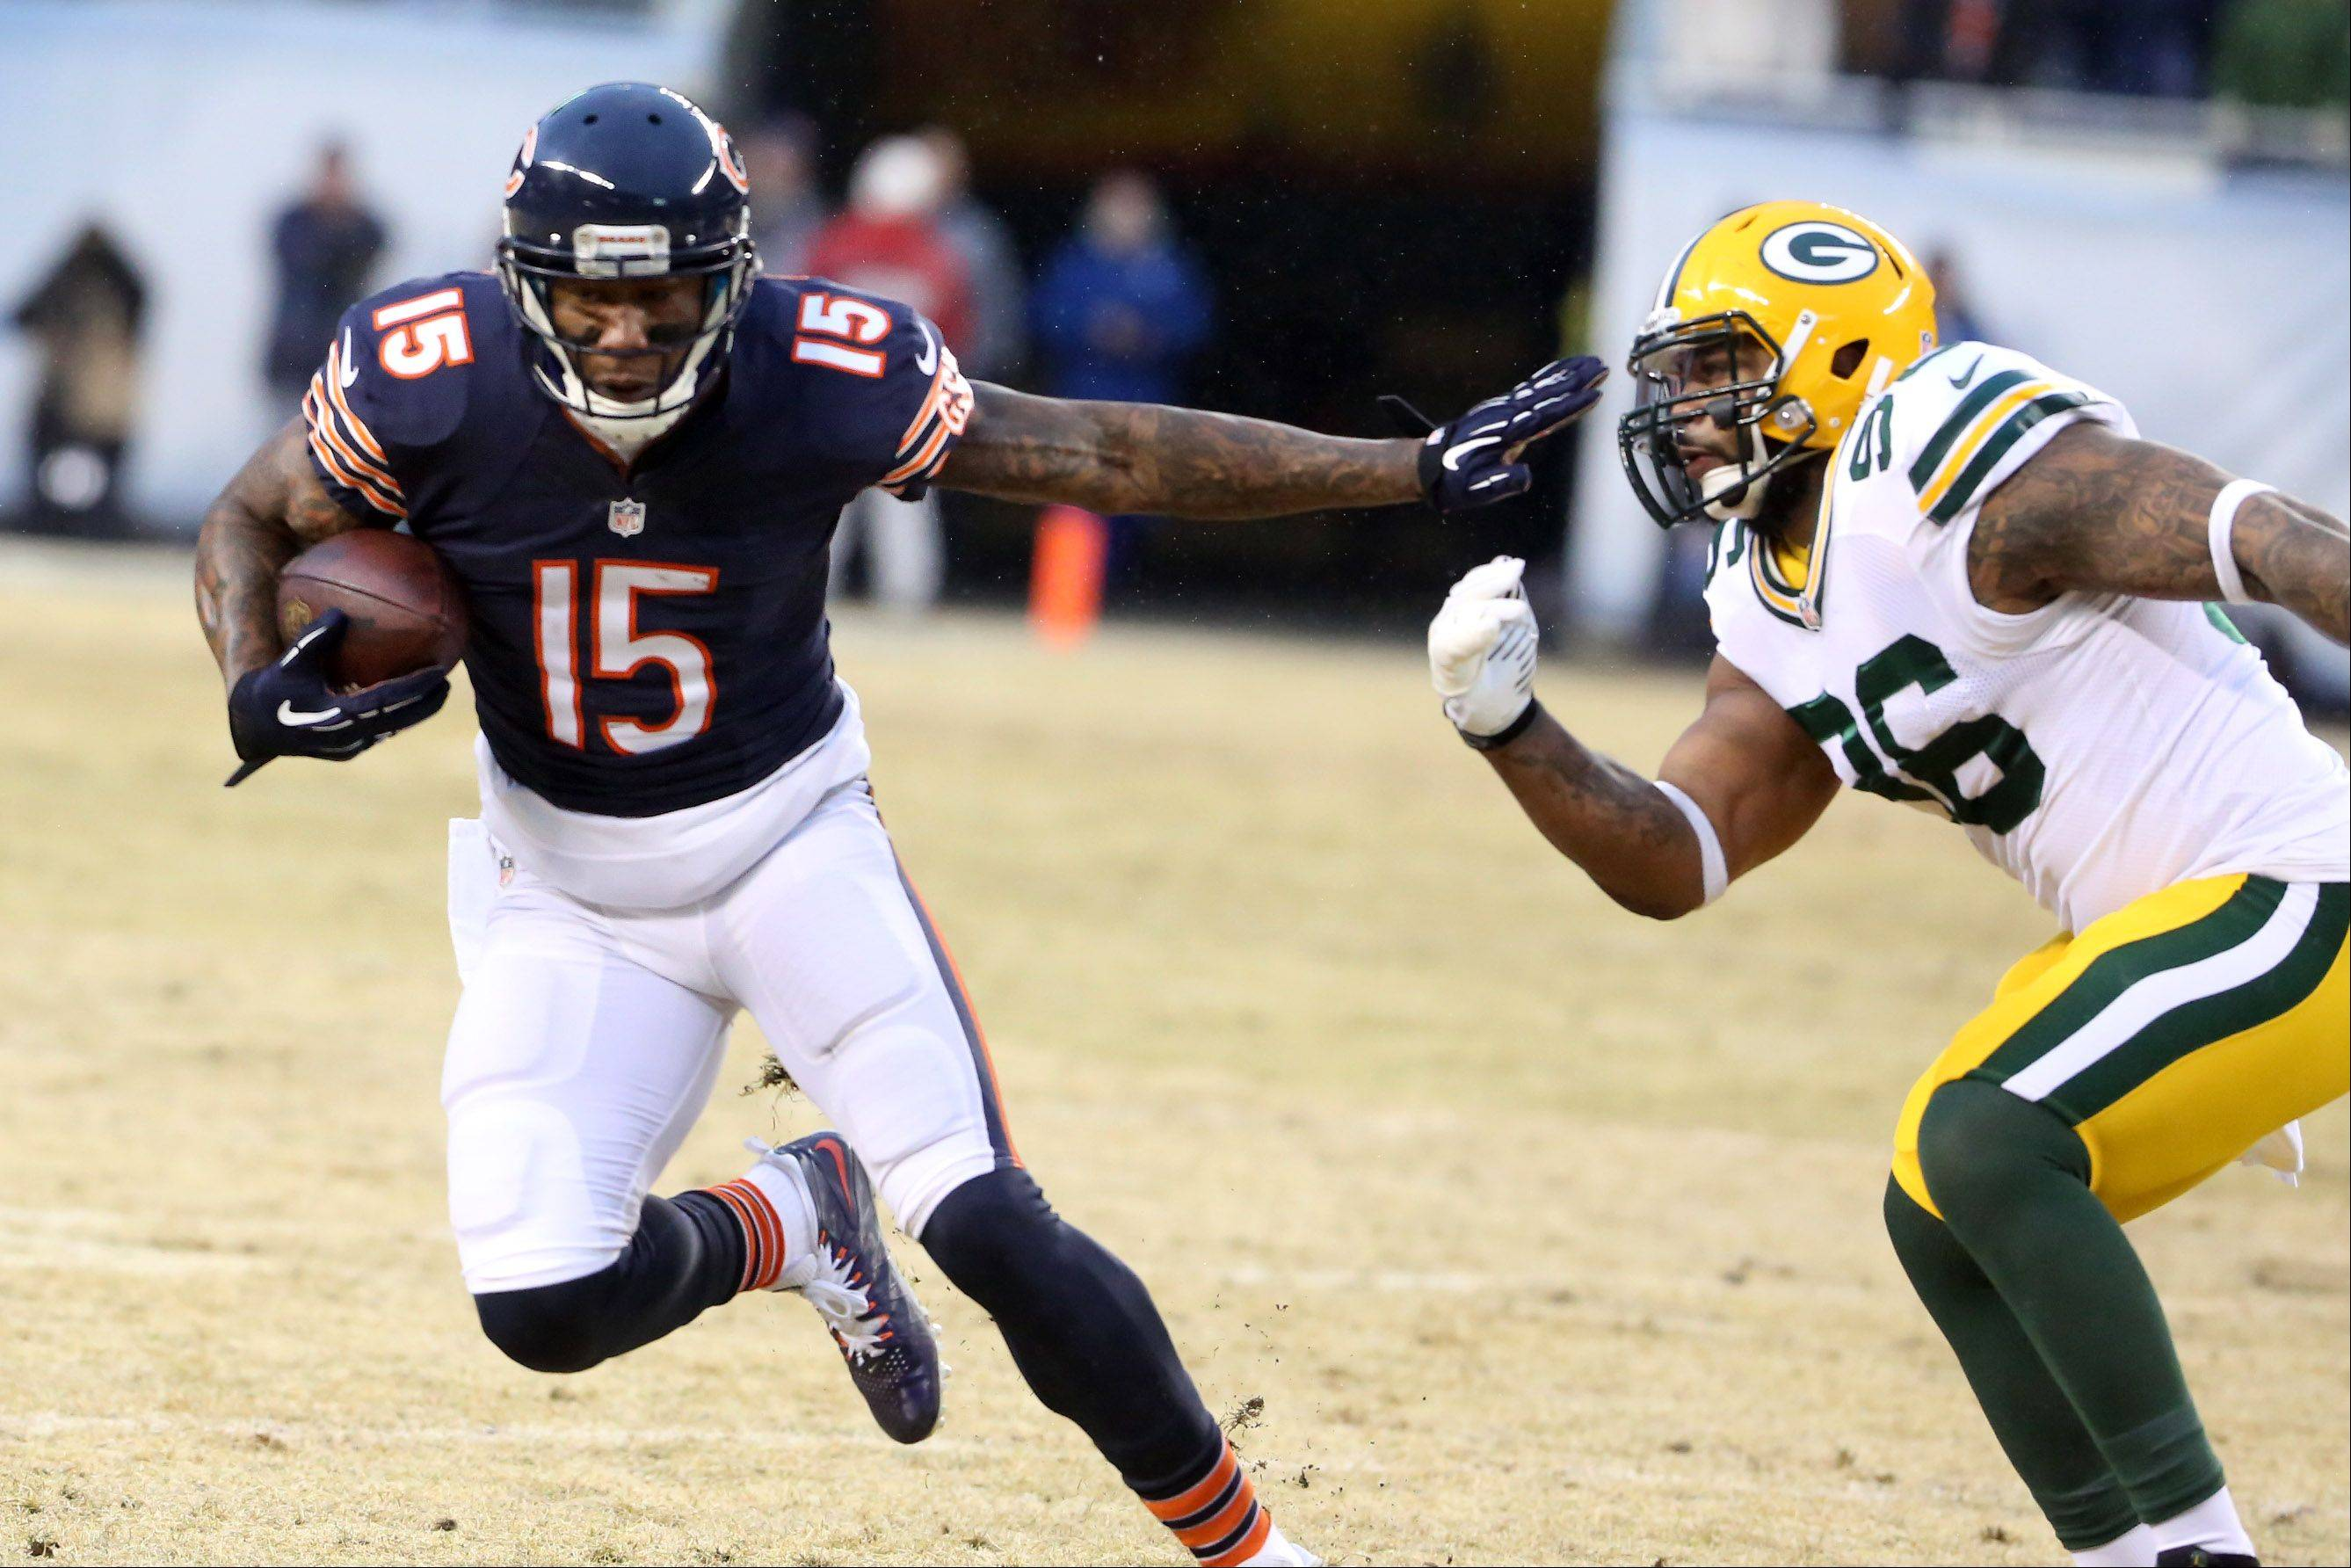 Chicago Bears wide receiver Brandon Marshall runs the ball after a catch against Green Bay Packers outside linebacker Mike Neal on Sunday at Soldier Field in Chicago.